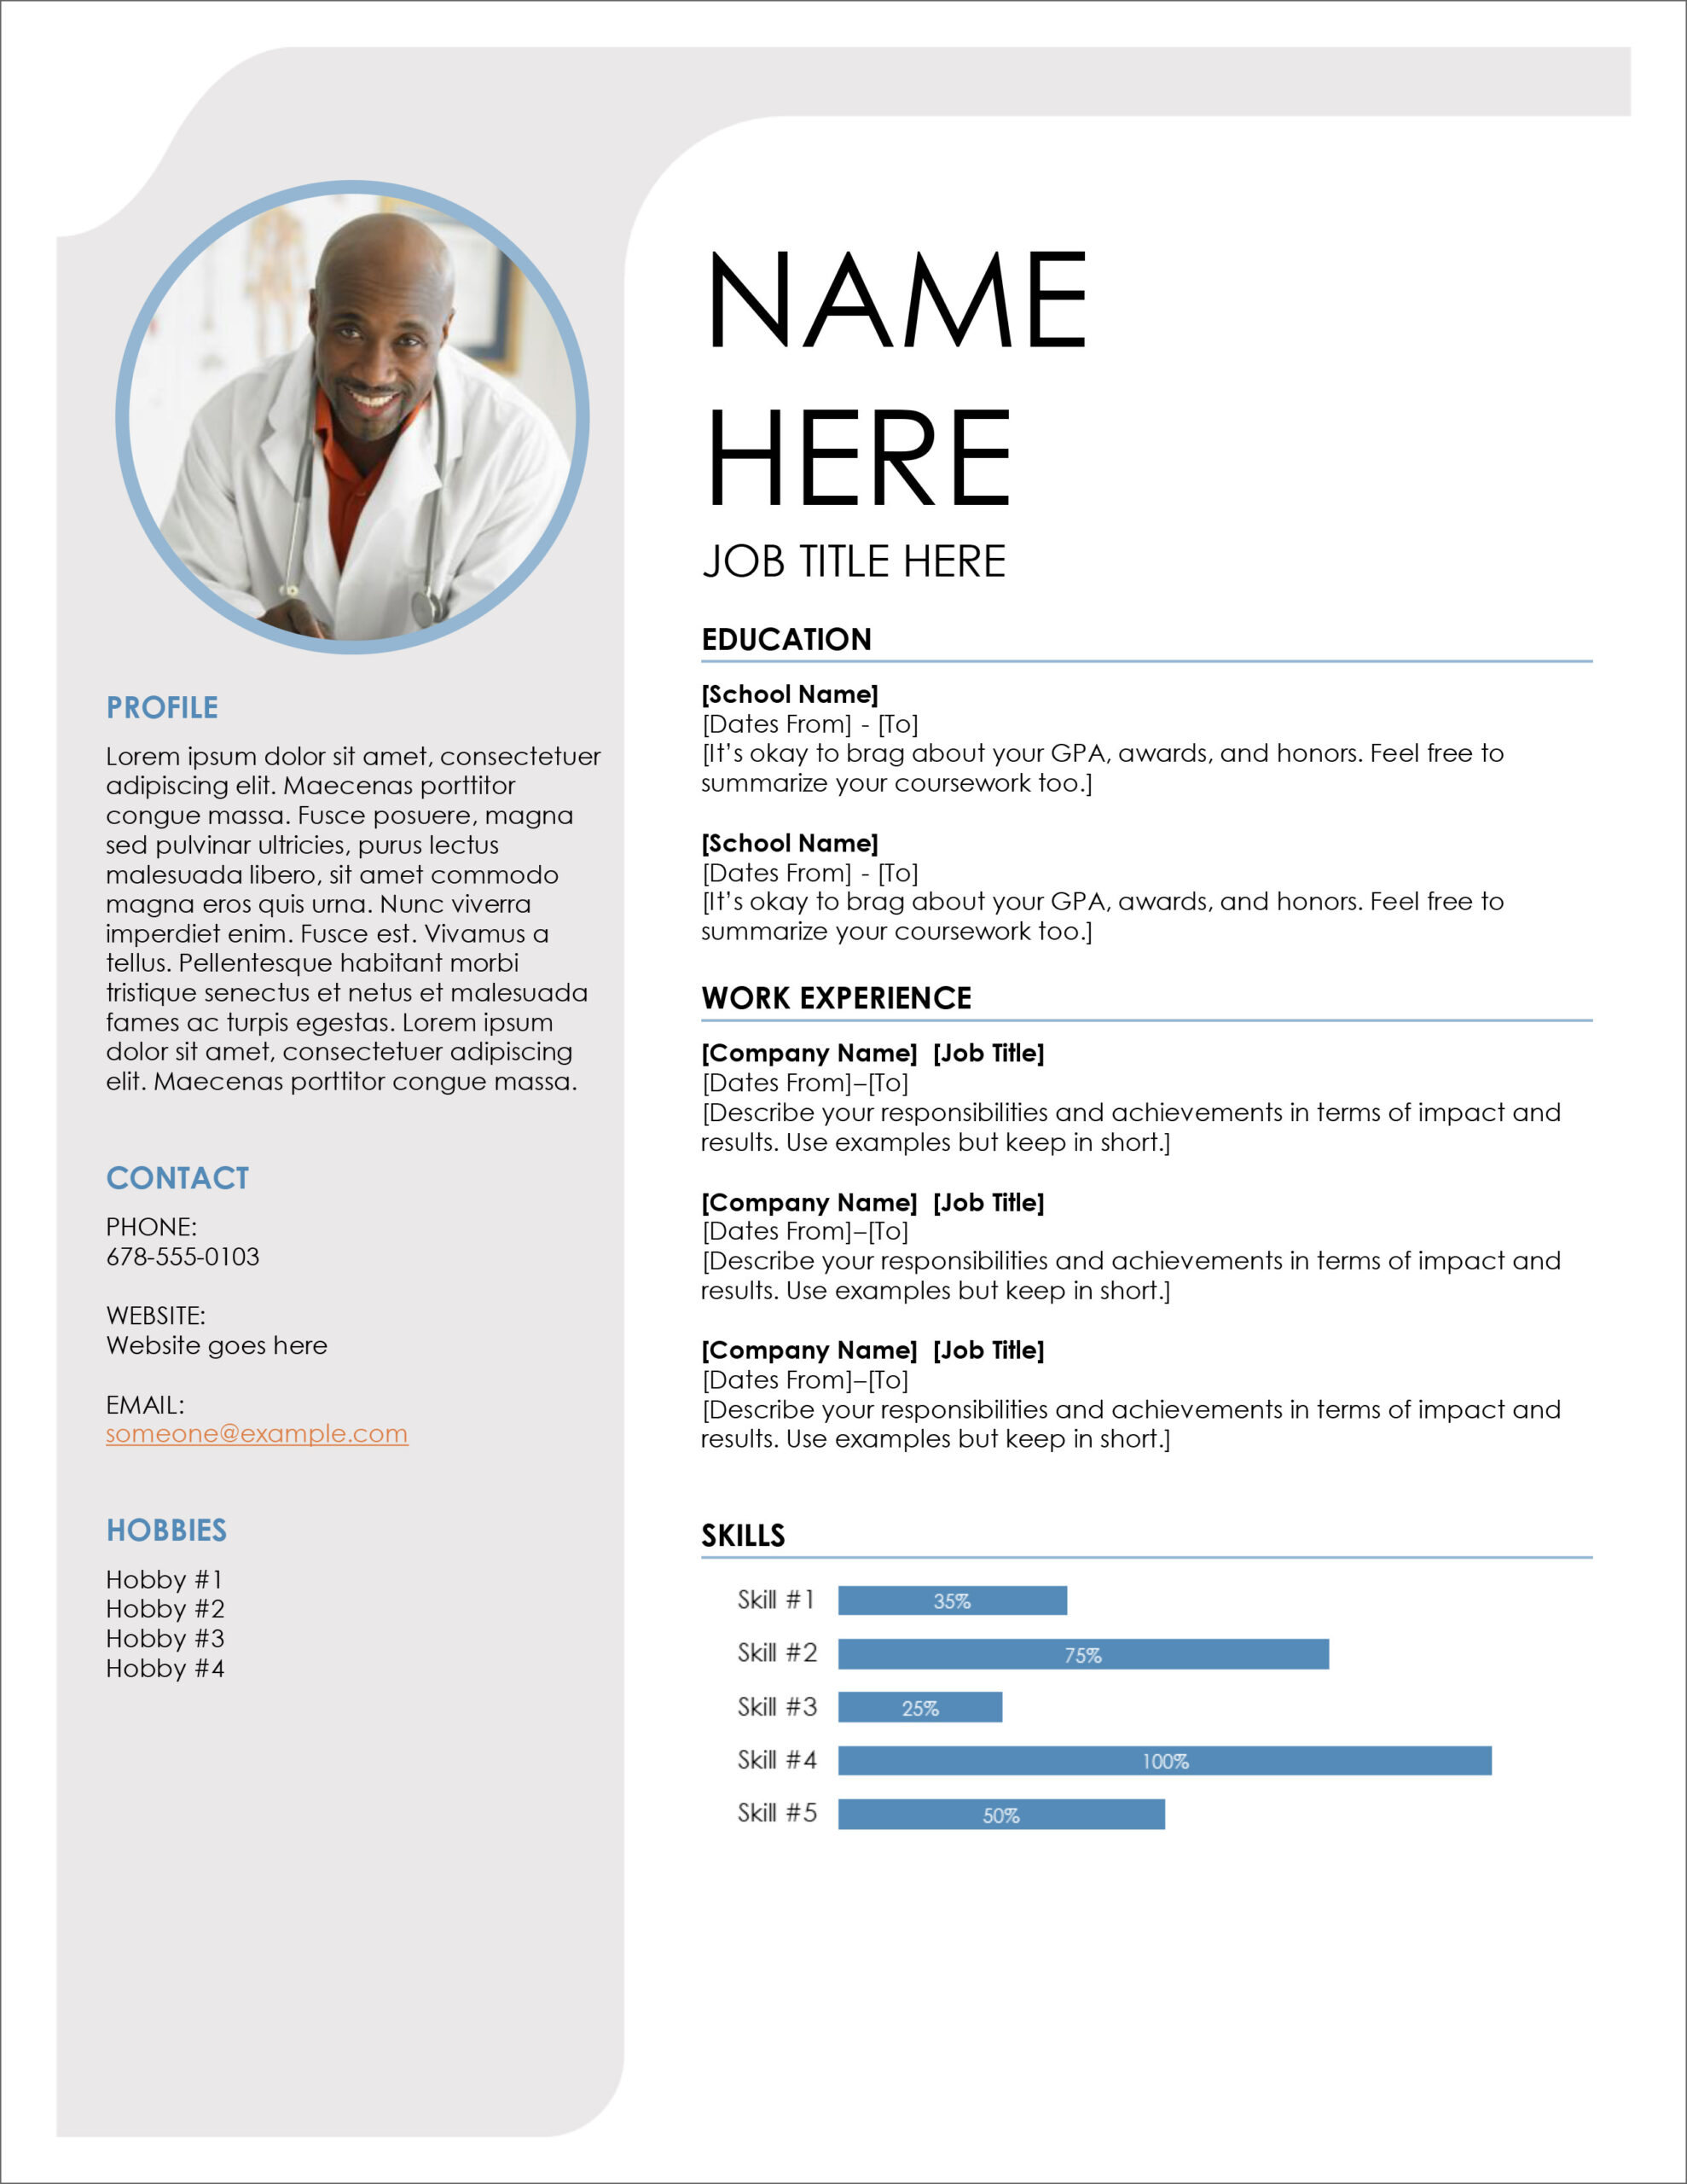 free modern resume cv templates minimalist simple clean design layout microsoft template Resume Resume Layout Free Download